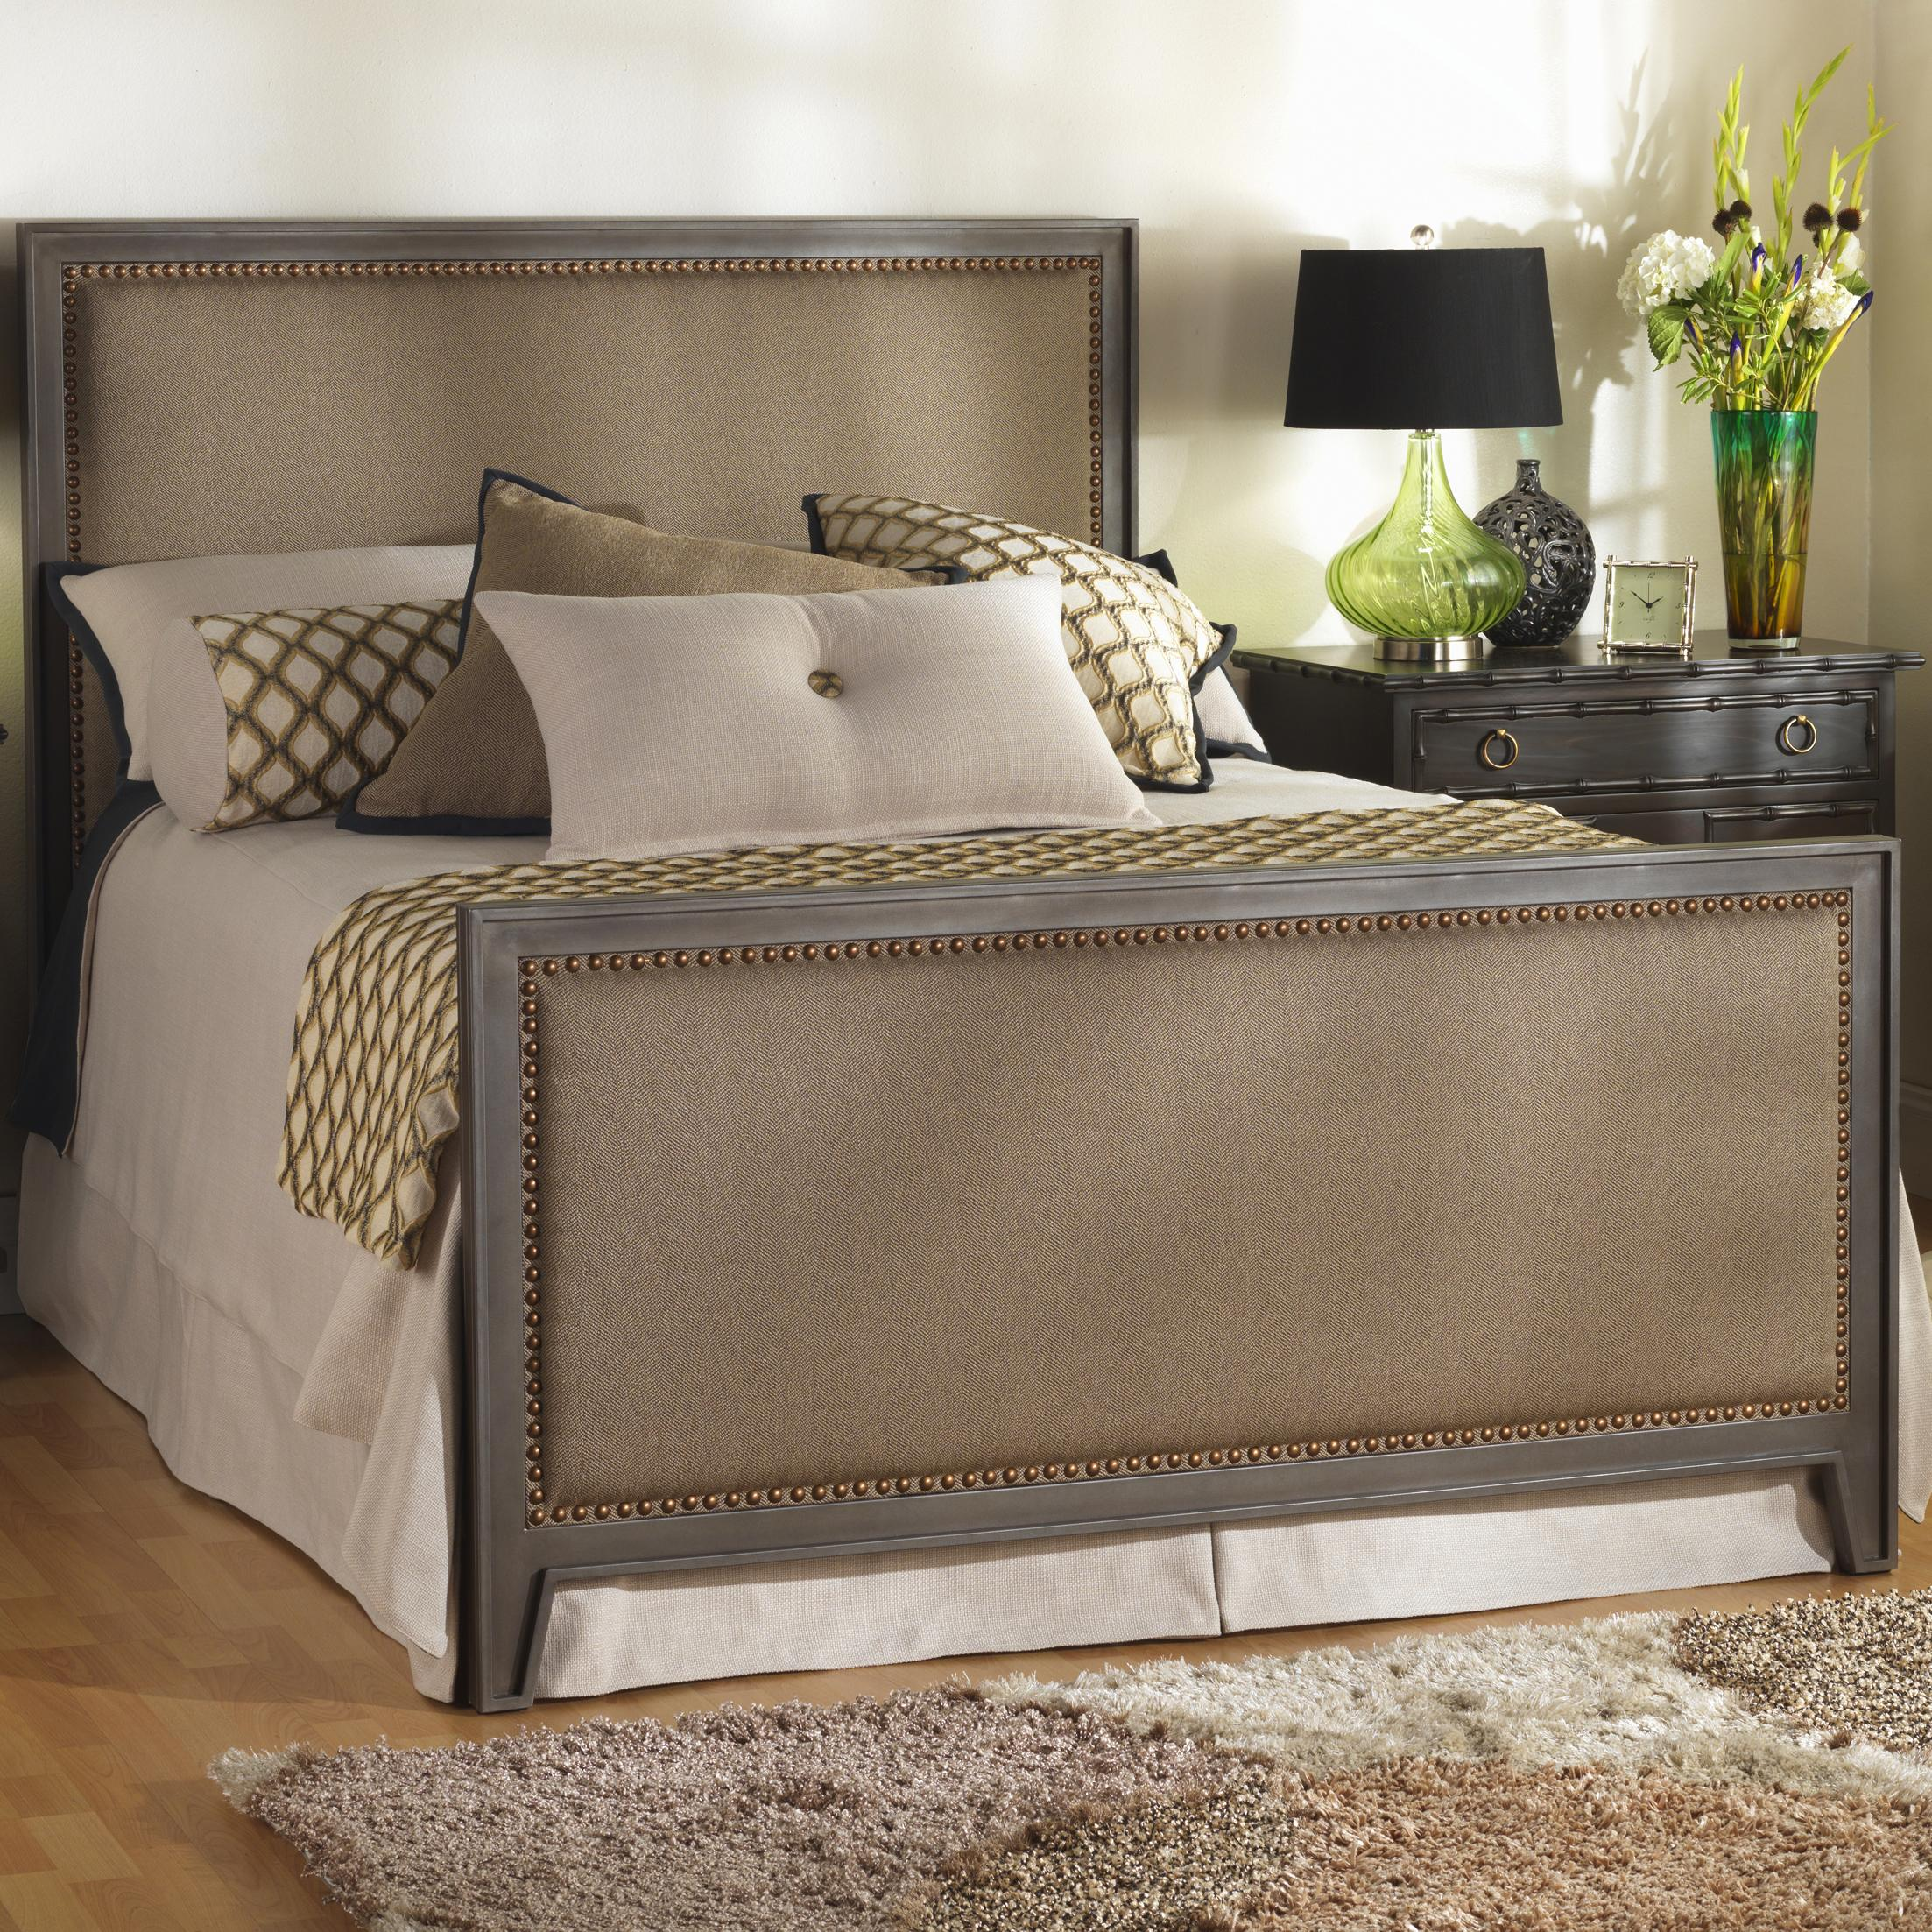 Wesley Allen Iron Beds Full Avery Iron and Upholstered Bed - Item Number: CB1230F